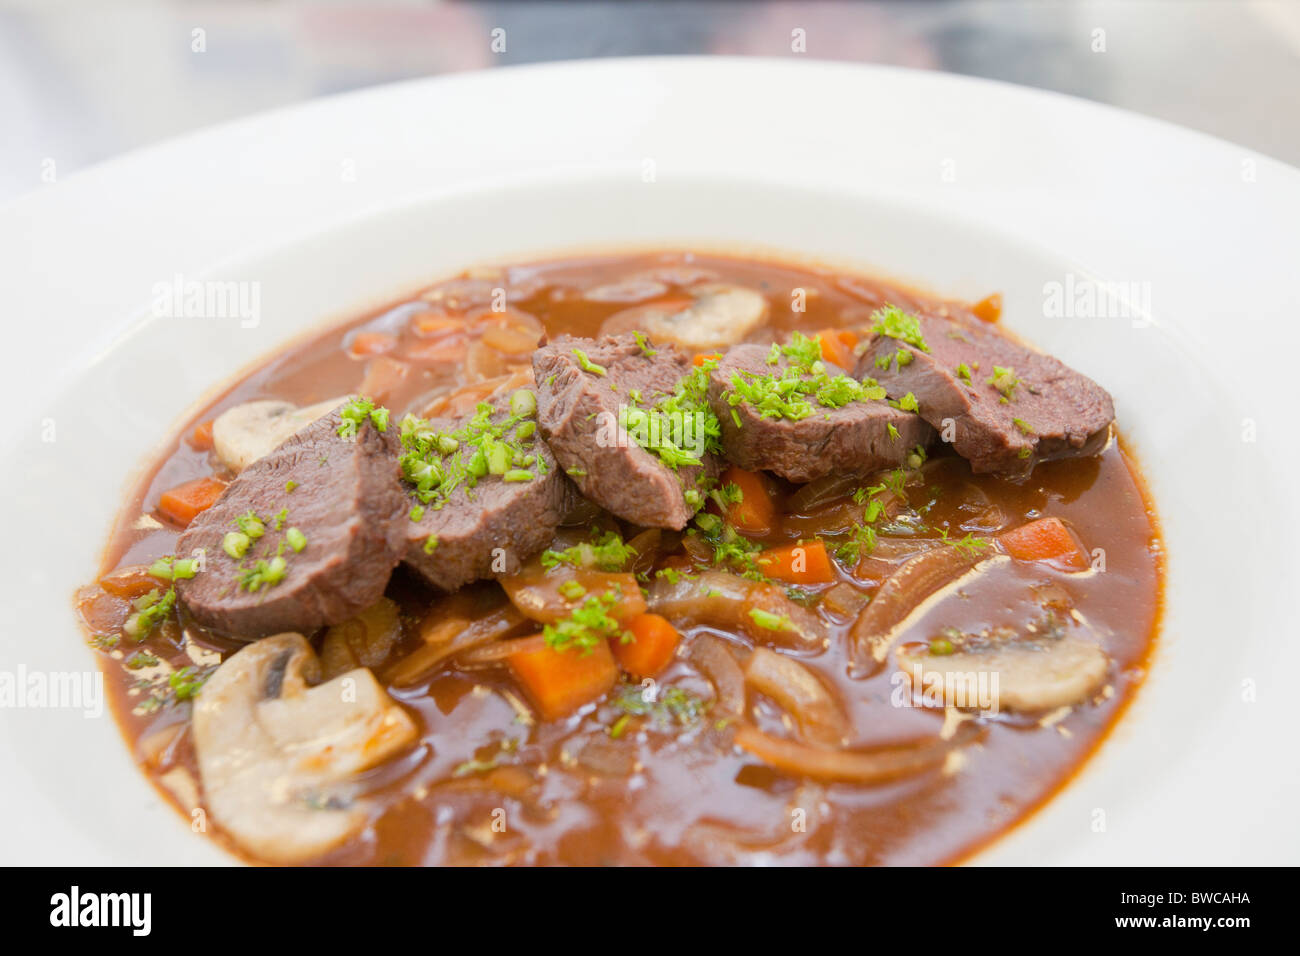 A dish prepared by catering students from Kendal College, Cumbria, UK, using wild venison - Stock Image